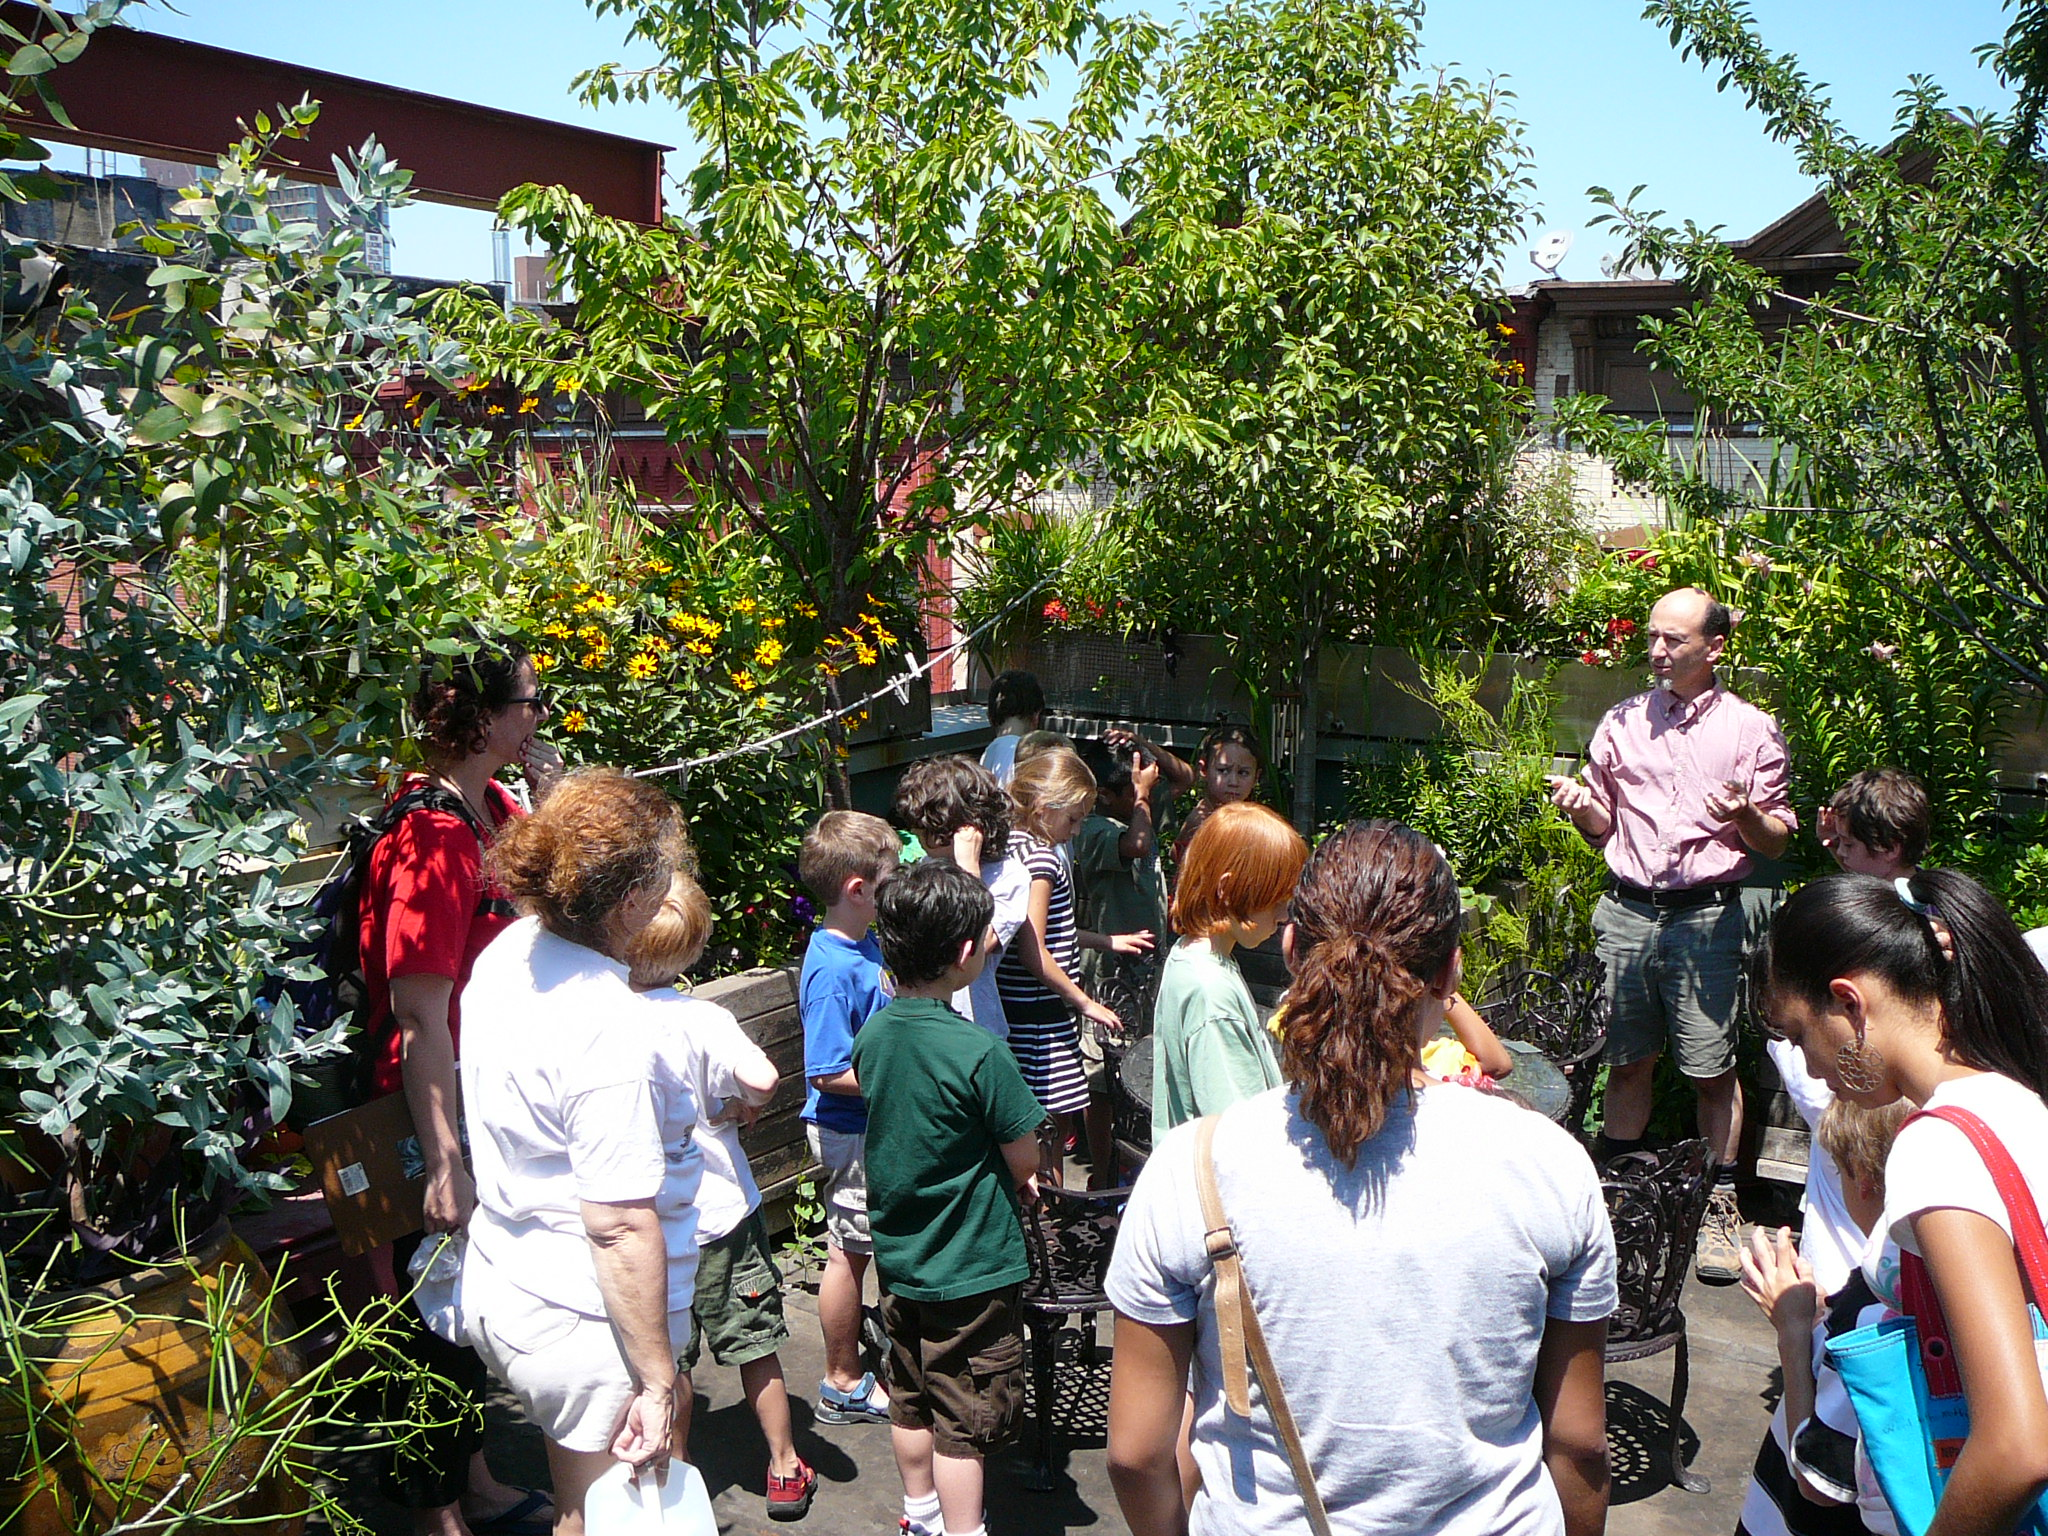 Paul A. Castrucci, Architects educates community youth on rooftop gardens, passivhaus, and solar power.